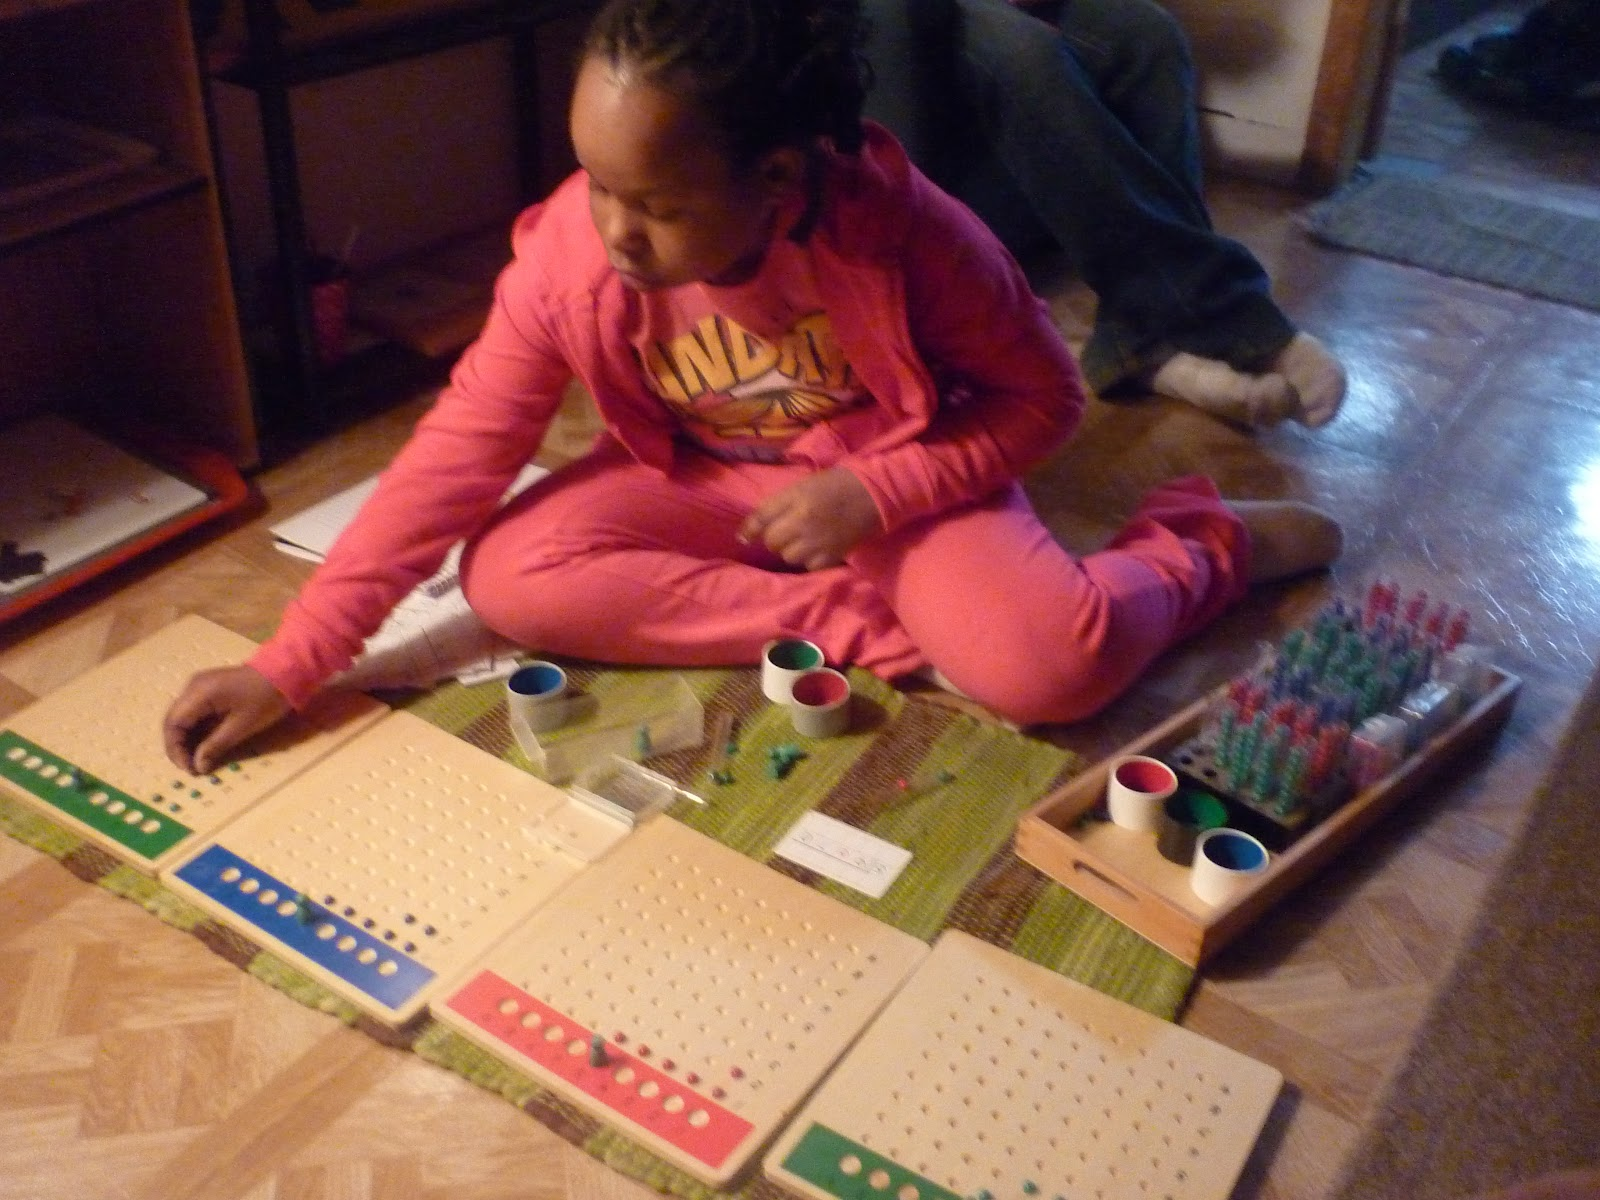 Long Division Boards with Racks and Tubes (Photo from We Don't Need No Education)